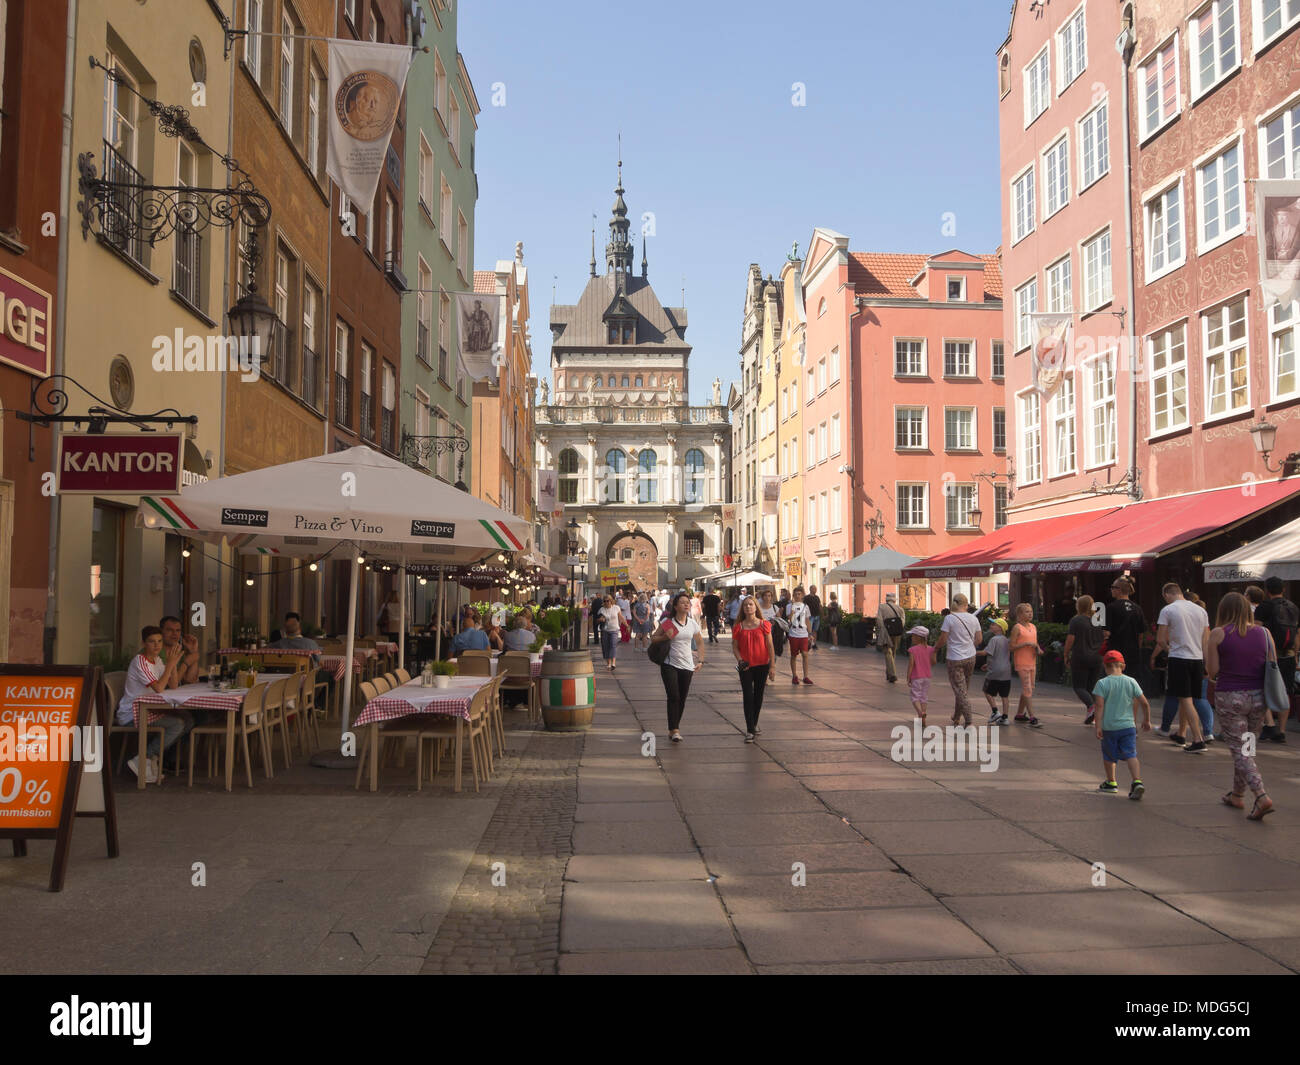 Strolling along in one of the car free streets or visiting an outdoors restaurant in the Main town in Gdansk Poland, are popular tourist activities - Stock Image